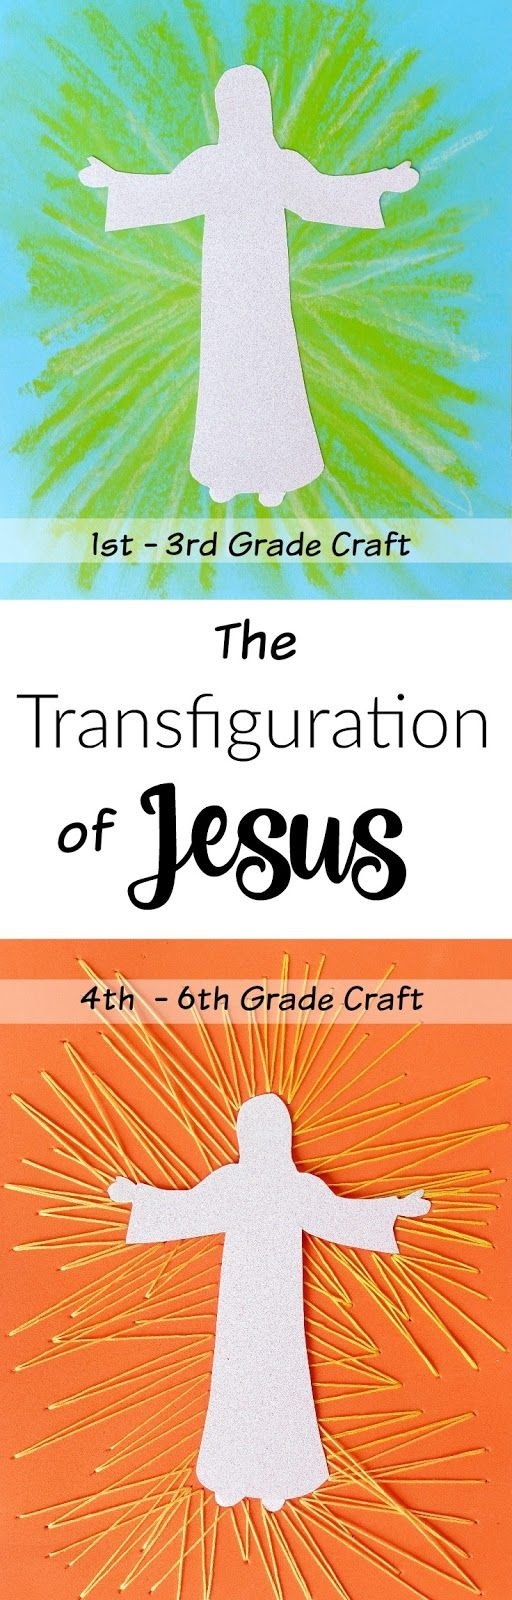 best 25 bible crafts ideas on pinterest bible crafts for